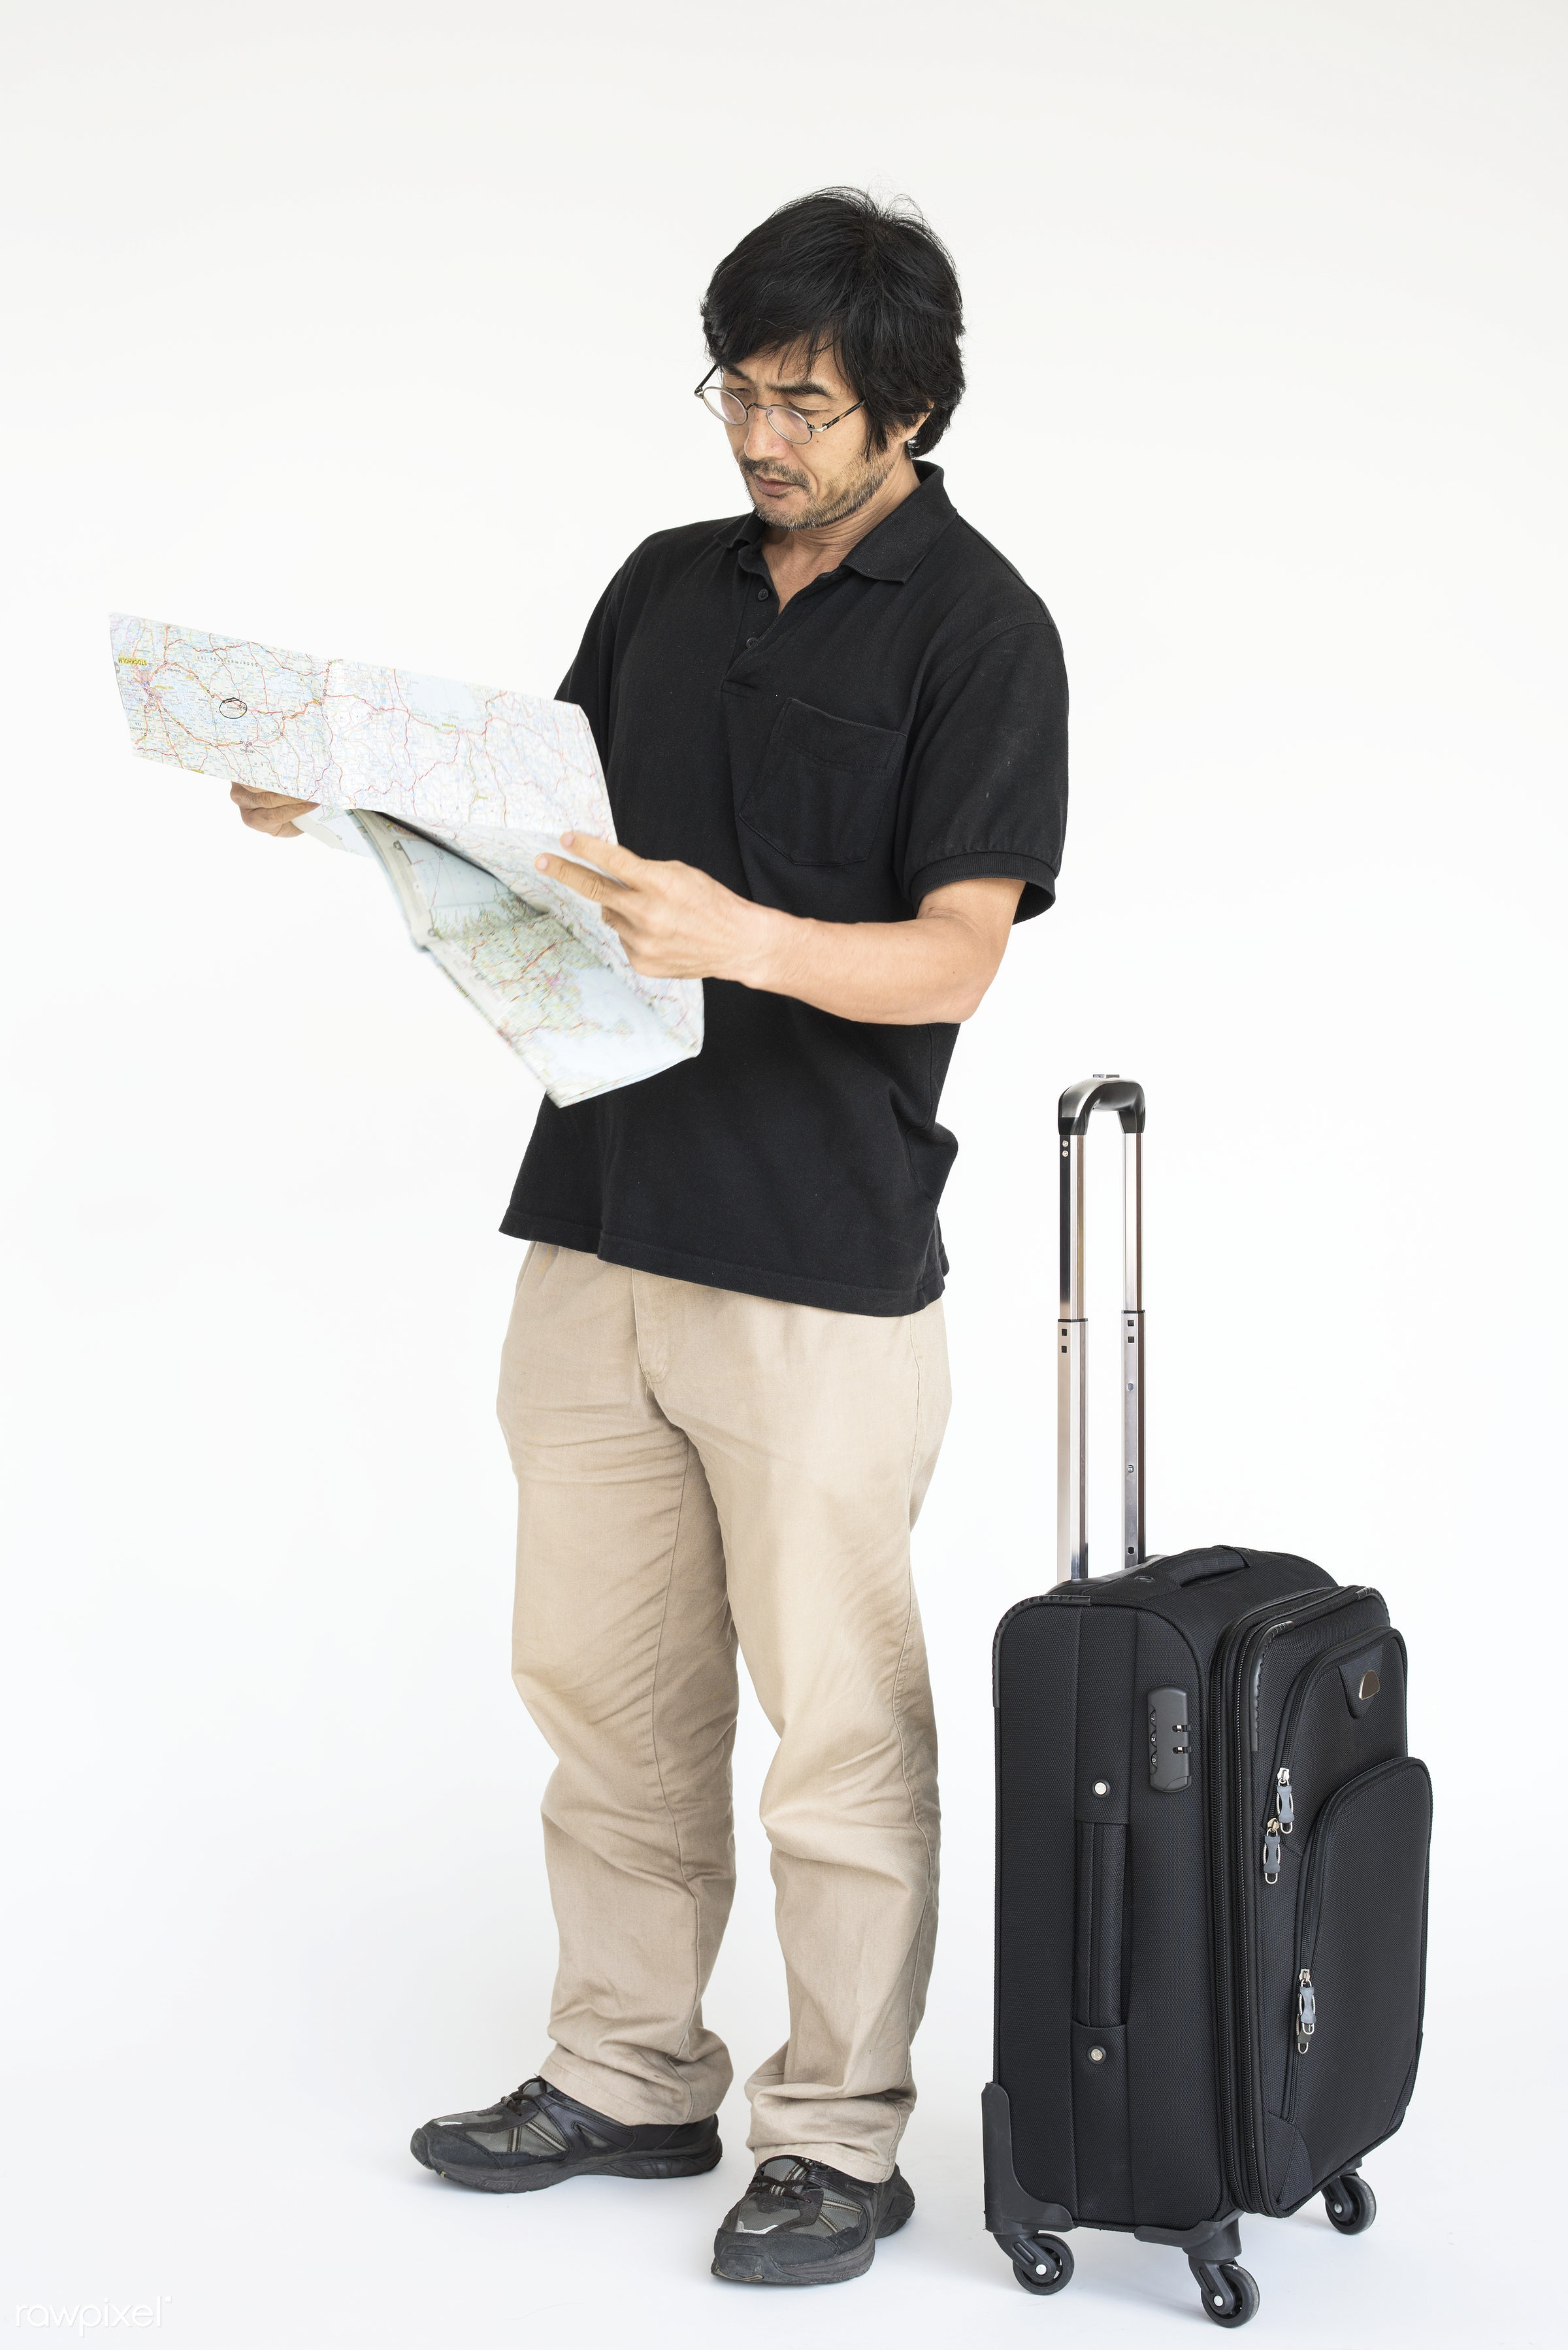 studio, expression, person, model, direction, isolated on white, luggage, race, people, style, casual, lifestyle, map, men,...